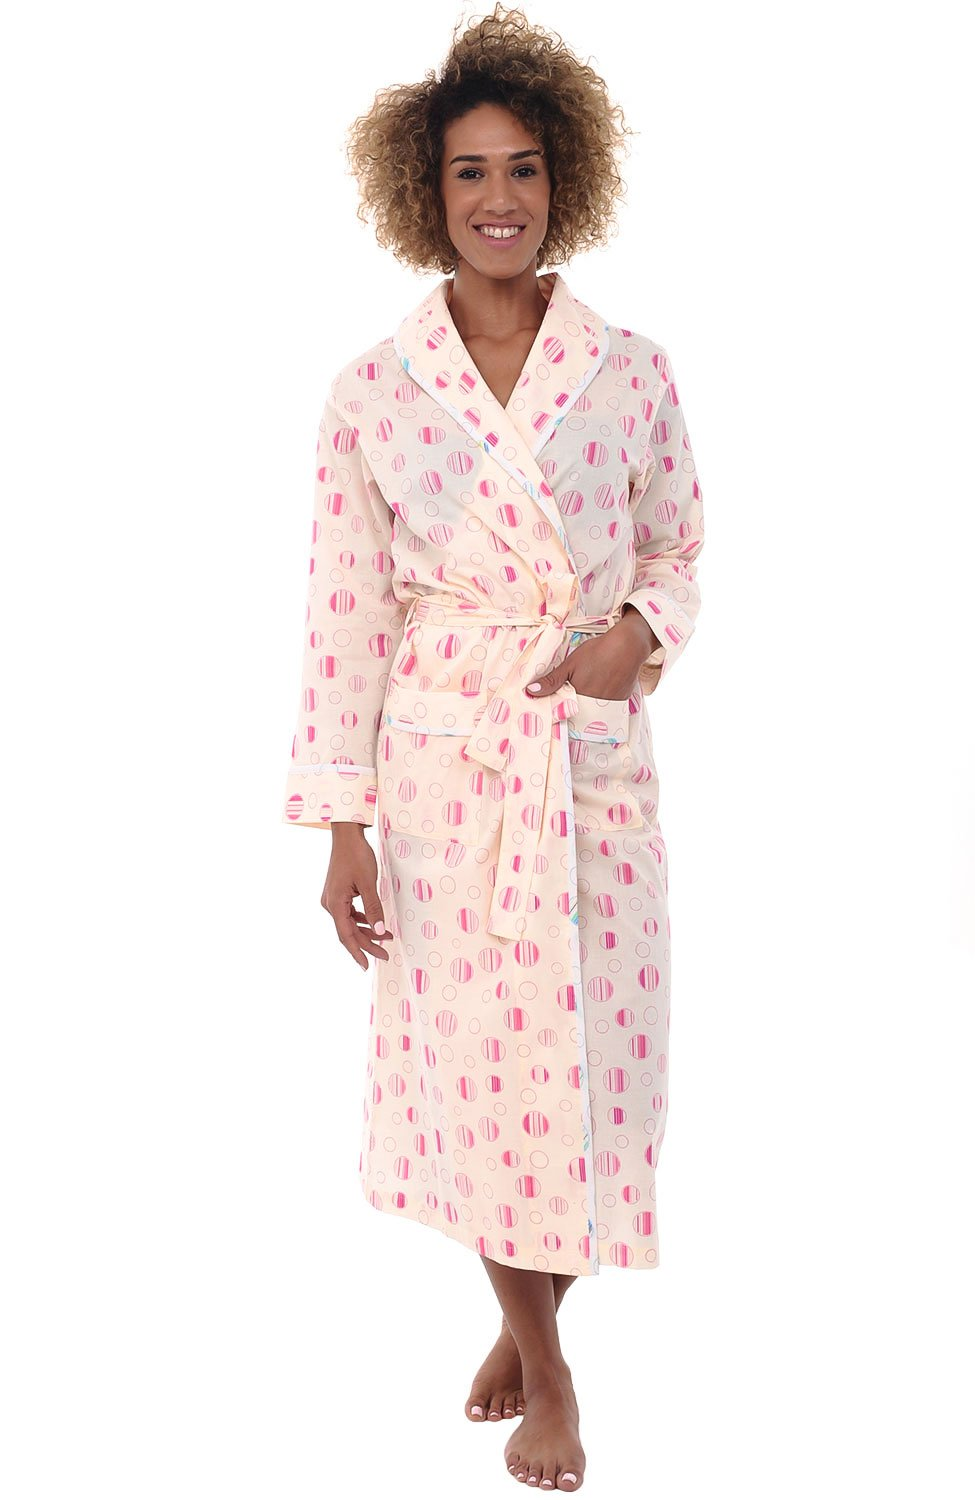 Galleon - Alexander Del Rossa Womens Cotton Robe 7526affd8